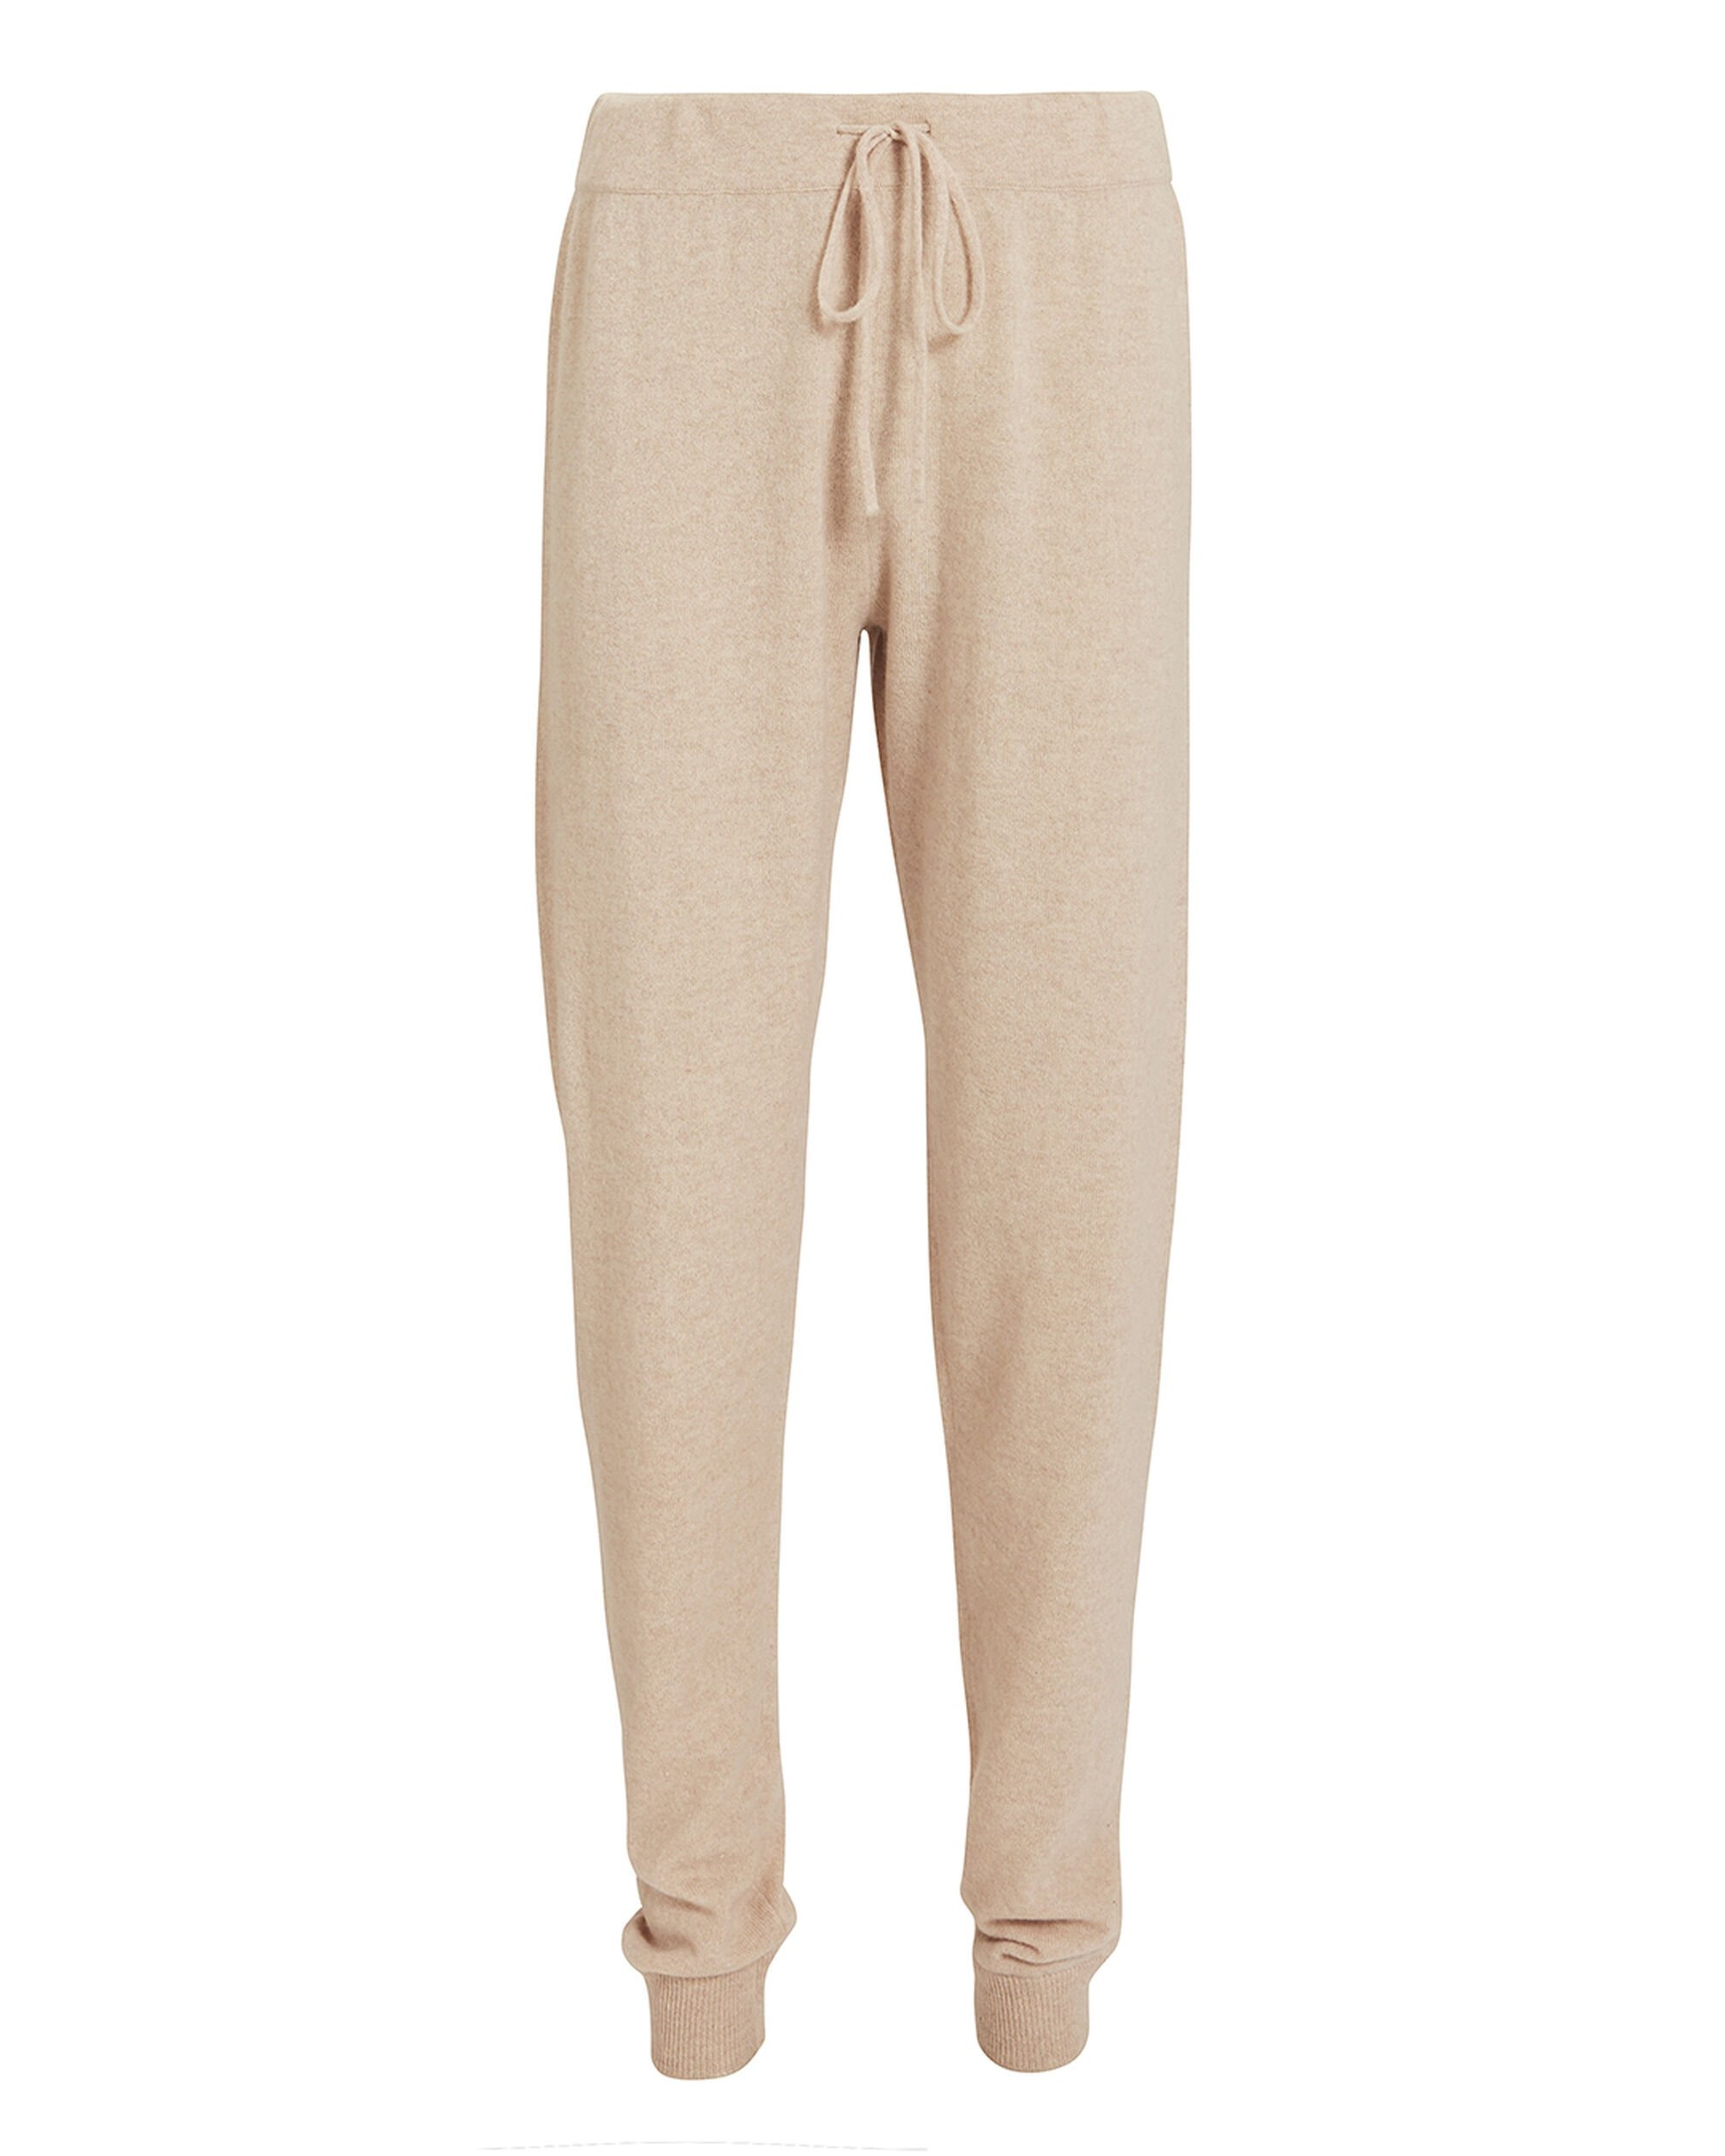 Warren Cashmere Pants, BEIGE, hi-res